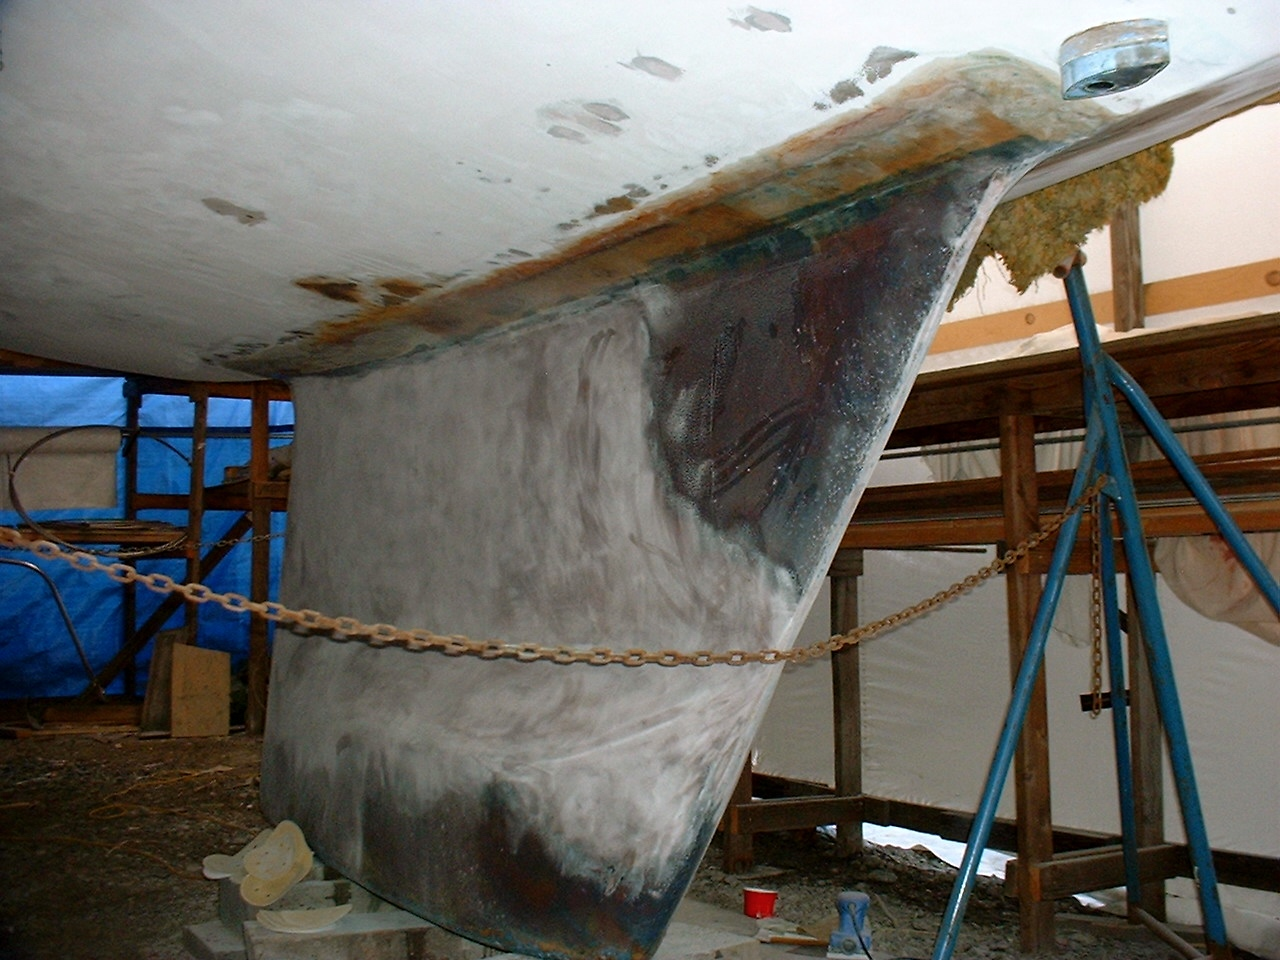 Encapsulating Keel